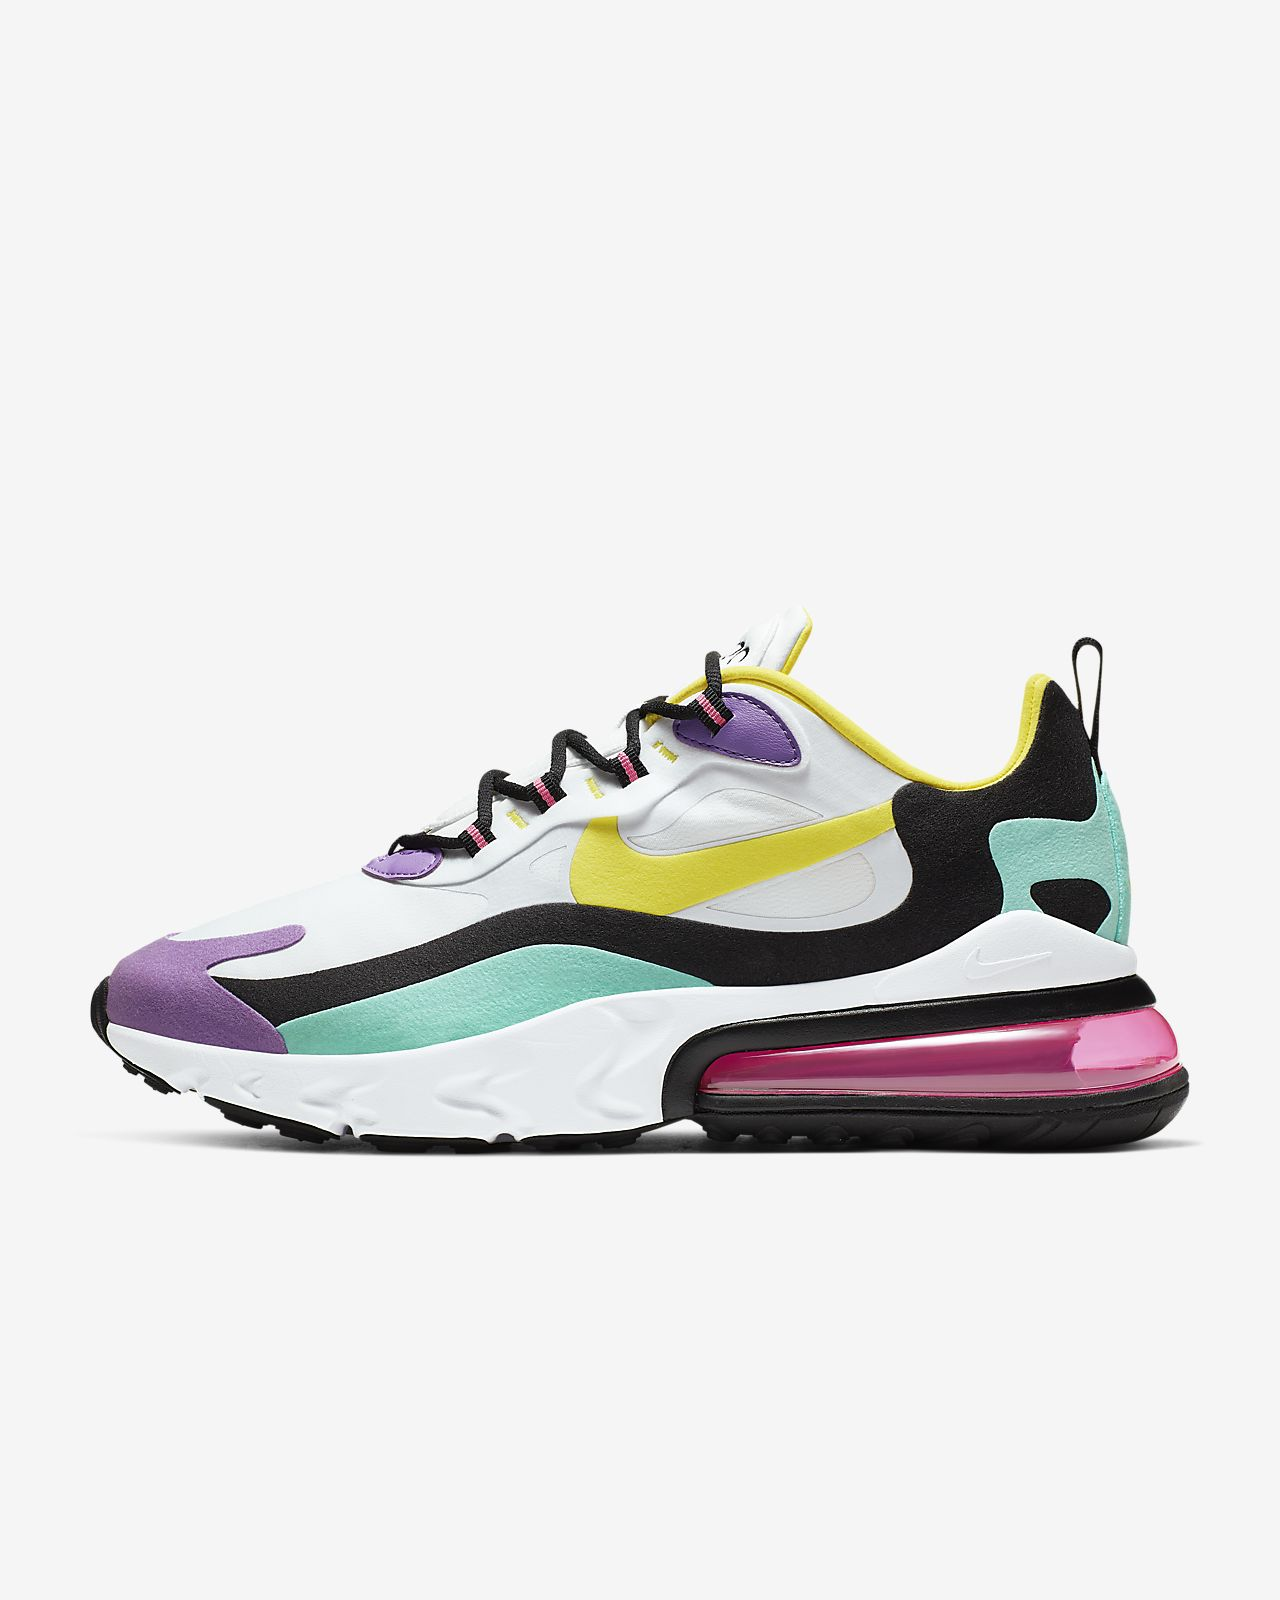 Nike Air Max 270 React (Geometric Art)-sko til mænd